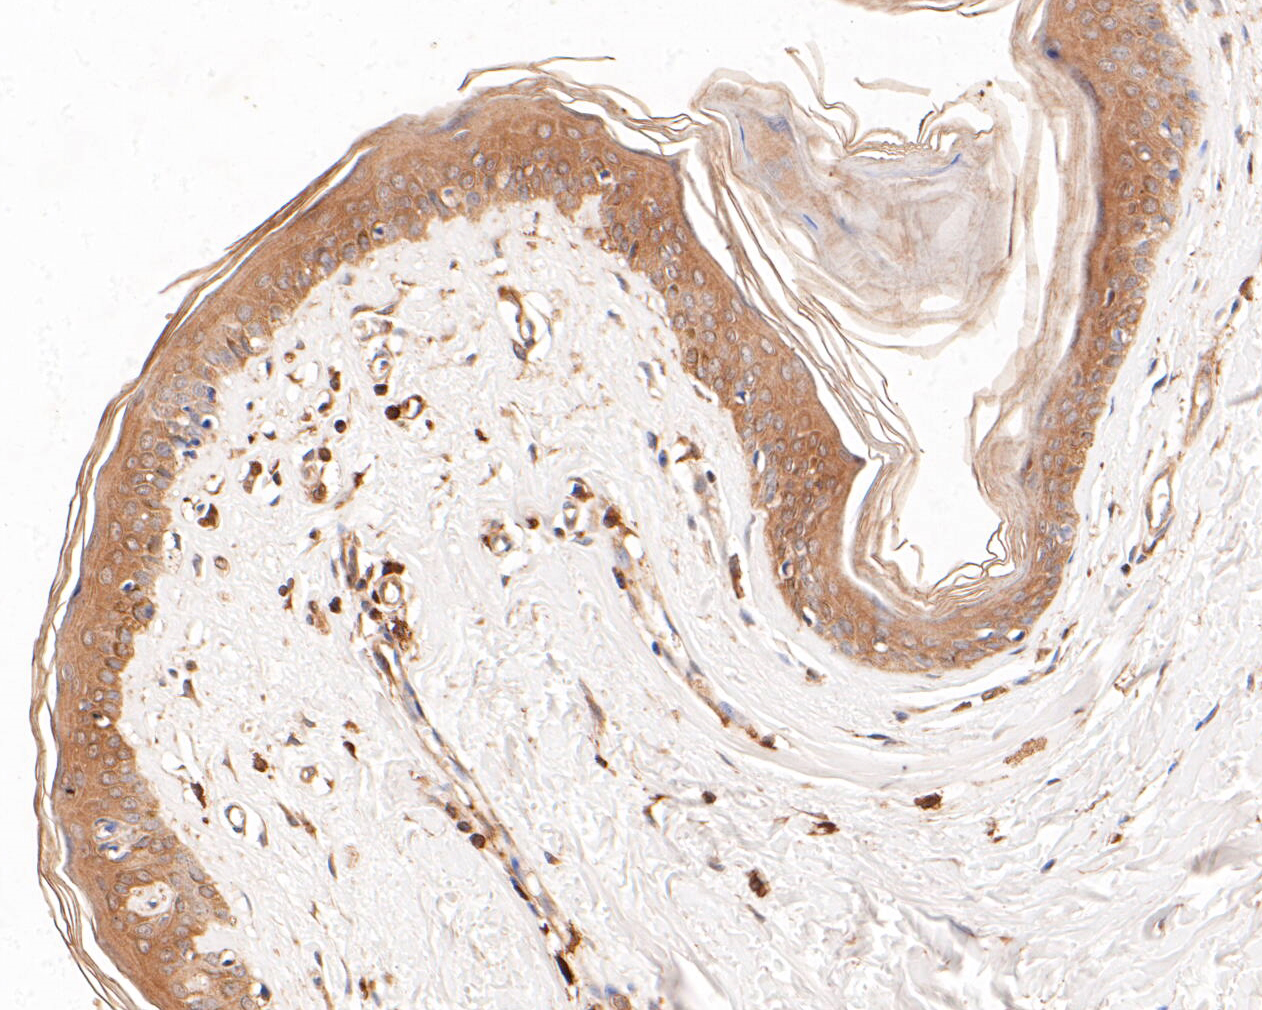 Immunohistochemical analysis of paraffin-embedded human skin tissue using anti-Cytokeratin 20 antibody. The section was pre-treated using heat mediated antigen retrieval with Tris-EDTA buffer (pH 8.0-8.4) for 20 minutes.The tissues were blocked in 5% BSA for 30 minutes at room temperature, washed with ddH2O and PBS, and then probed with the primary antibody (ER1901-97, 1/200) for 30 minutes at room temperature. The detection was performed using an HRP conjugated compact polymer system. DAB was used as the chromogen. Tissues were counterstained with hematoxylin and mounted with DPX.